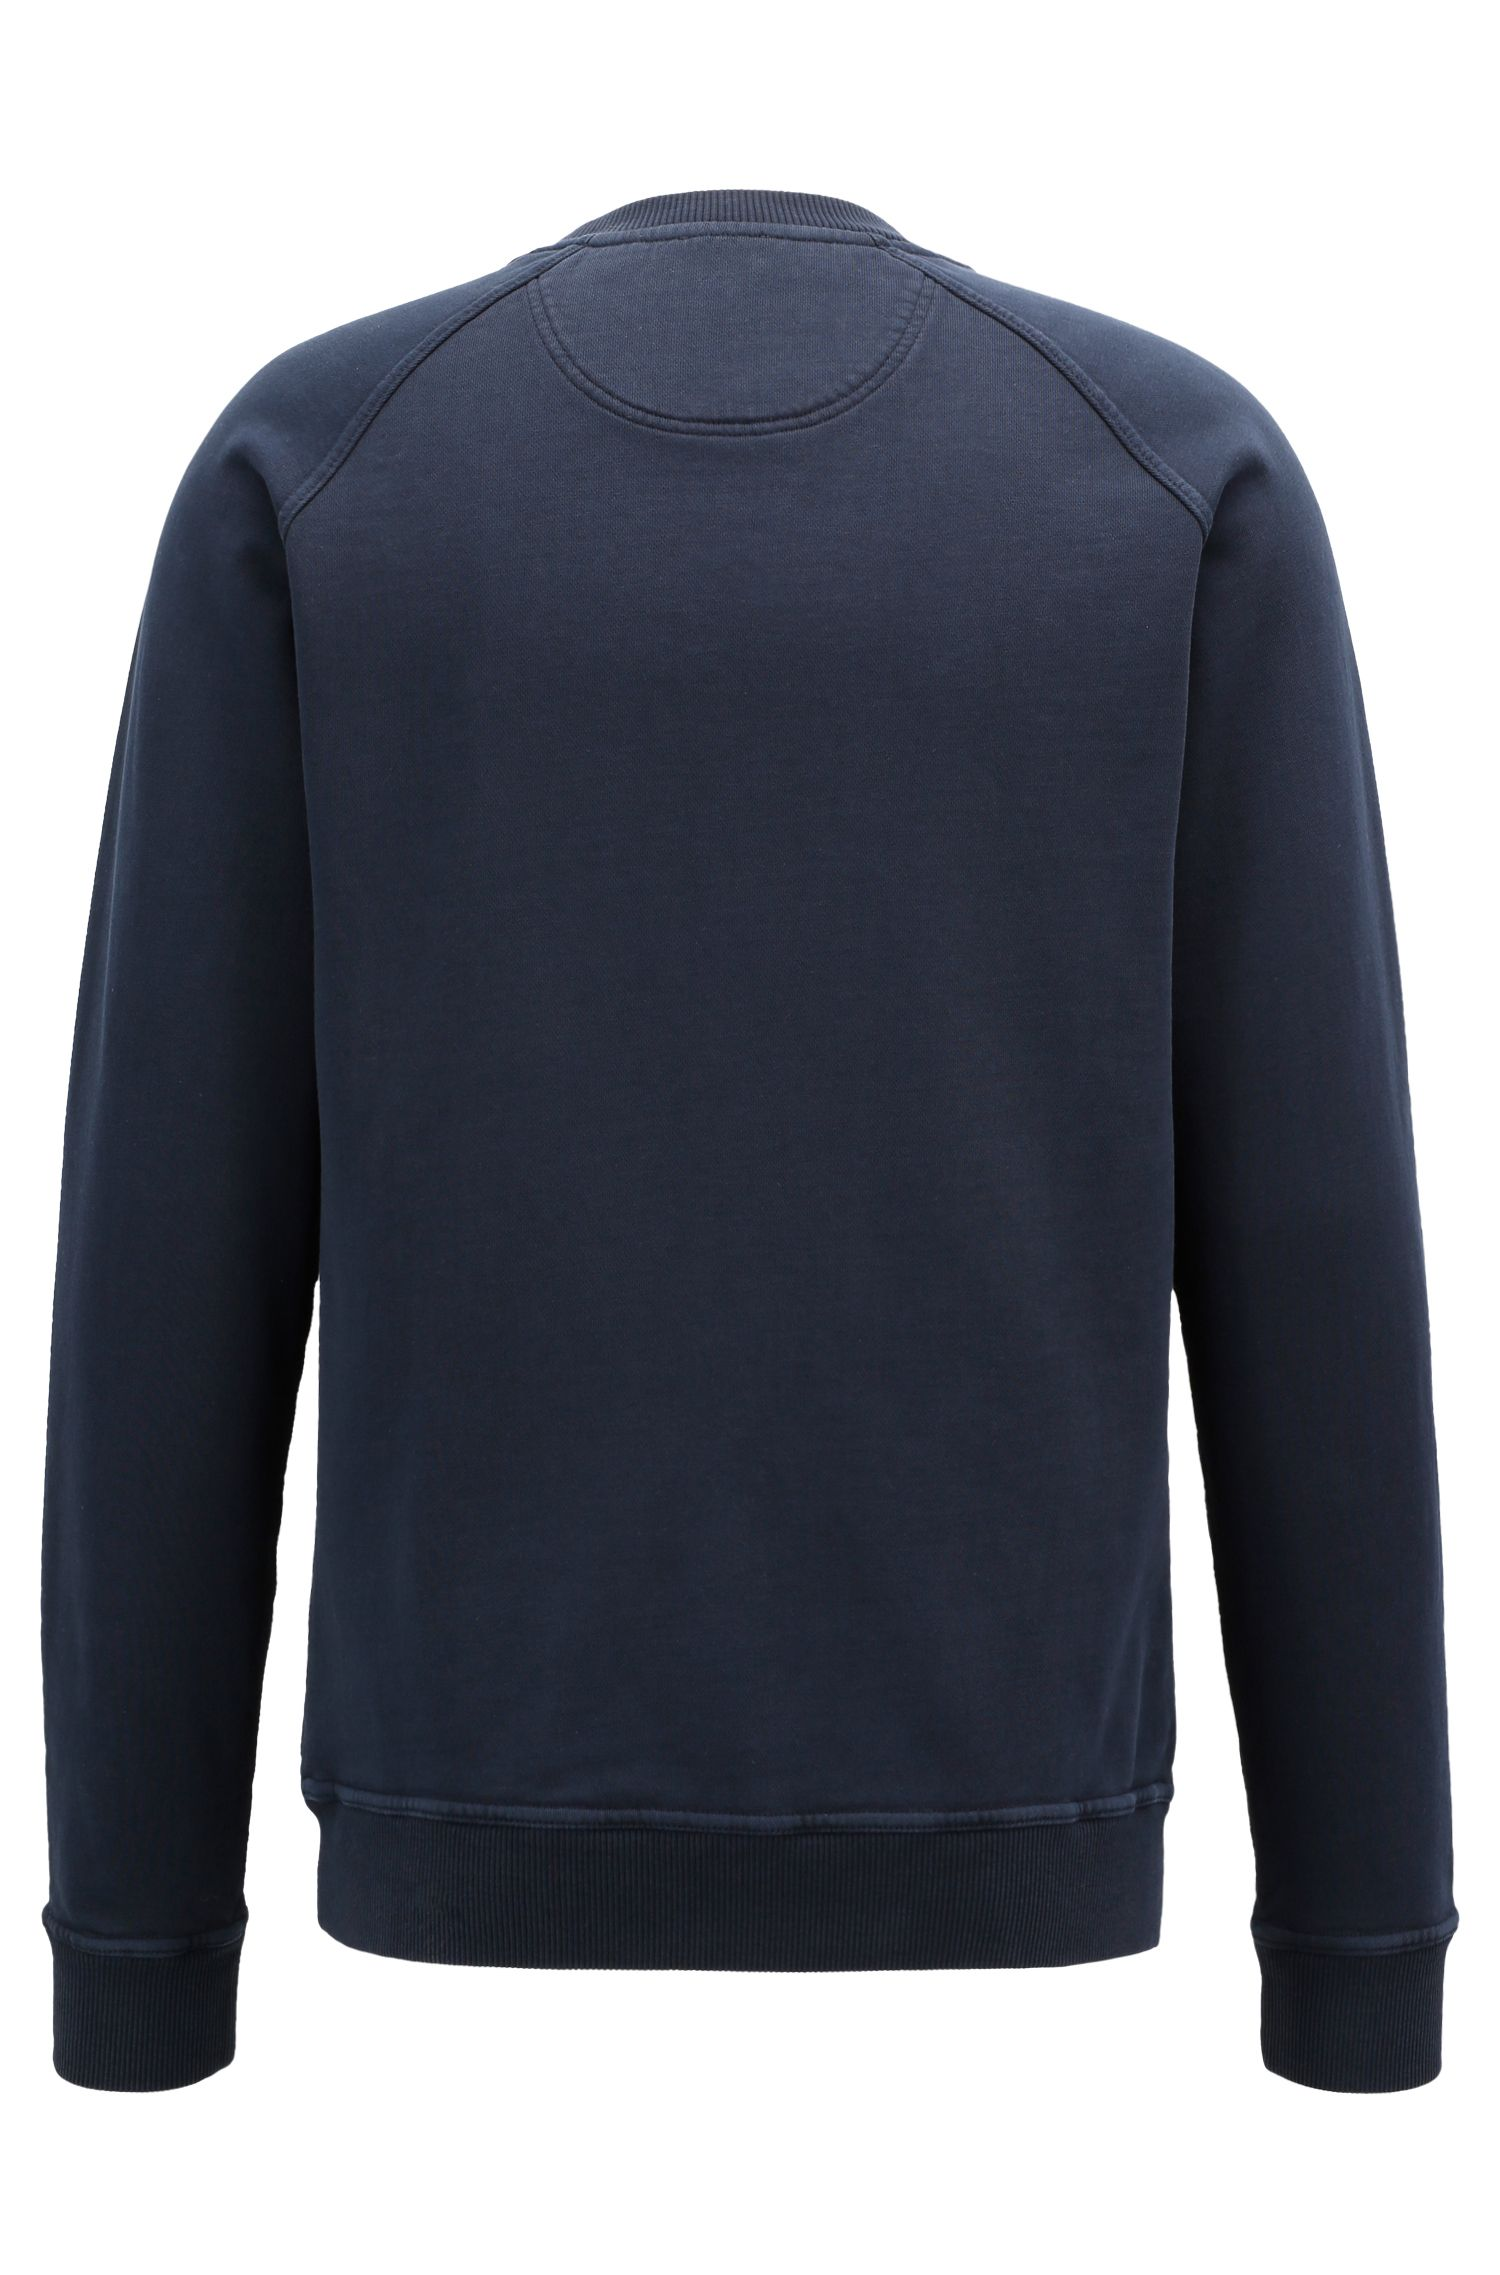 Crew-neck sweatshirt in recot²® French terry